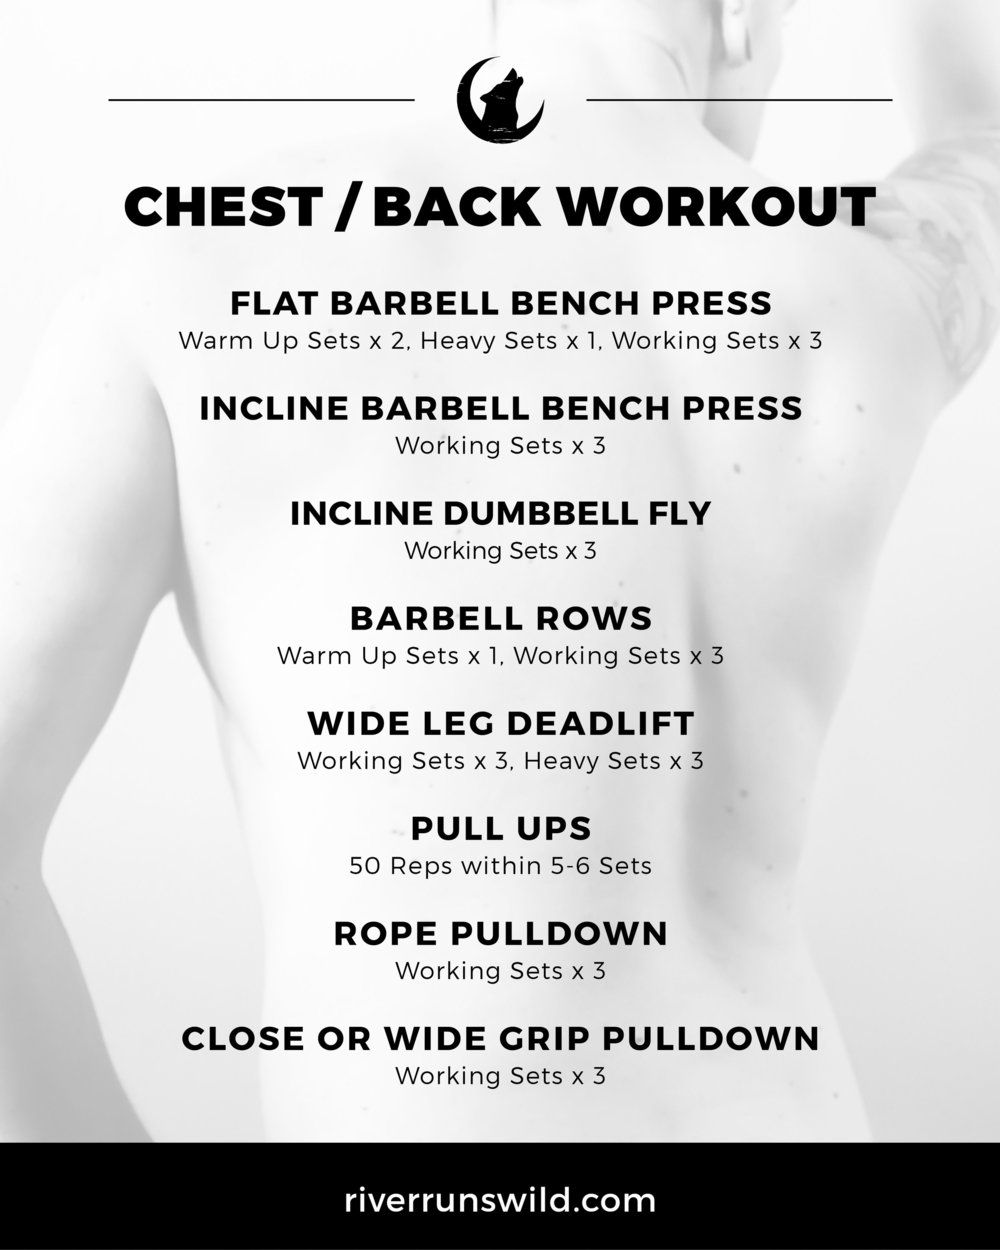 River-Runs-Wild-FTM-Fitness-Chest-Back-Workout-To-Get-Big-Plan-Training-Lifting-Size-Muscle-Strength-Bodybuilding.jpeg